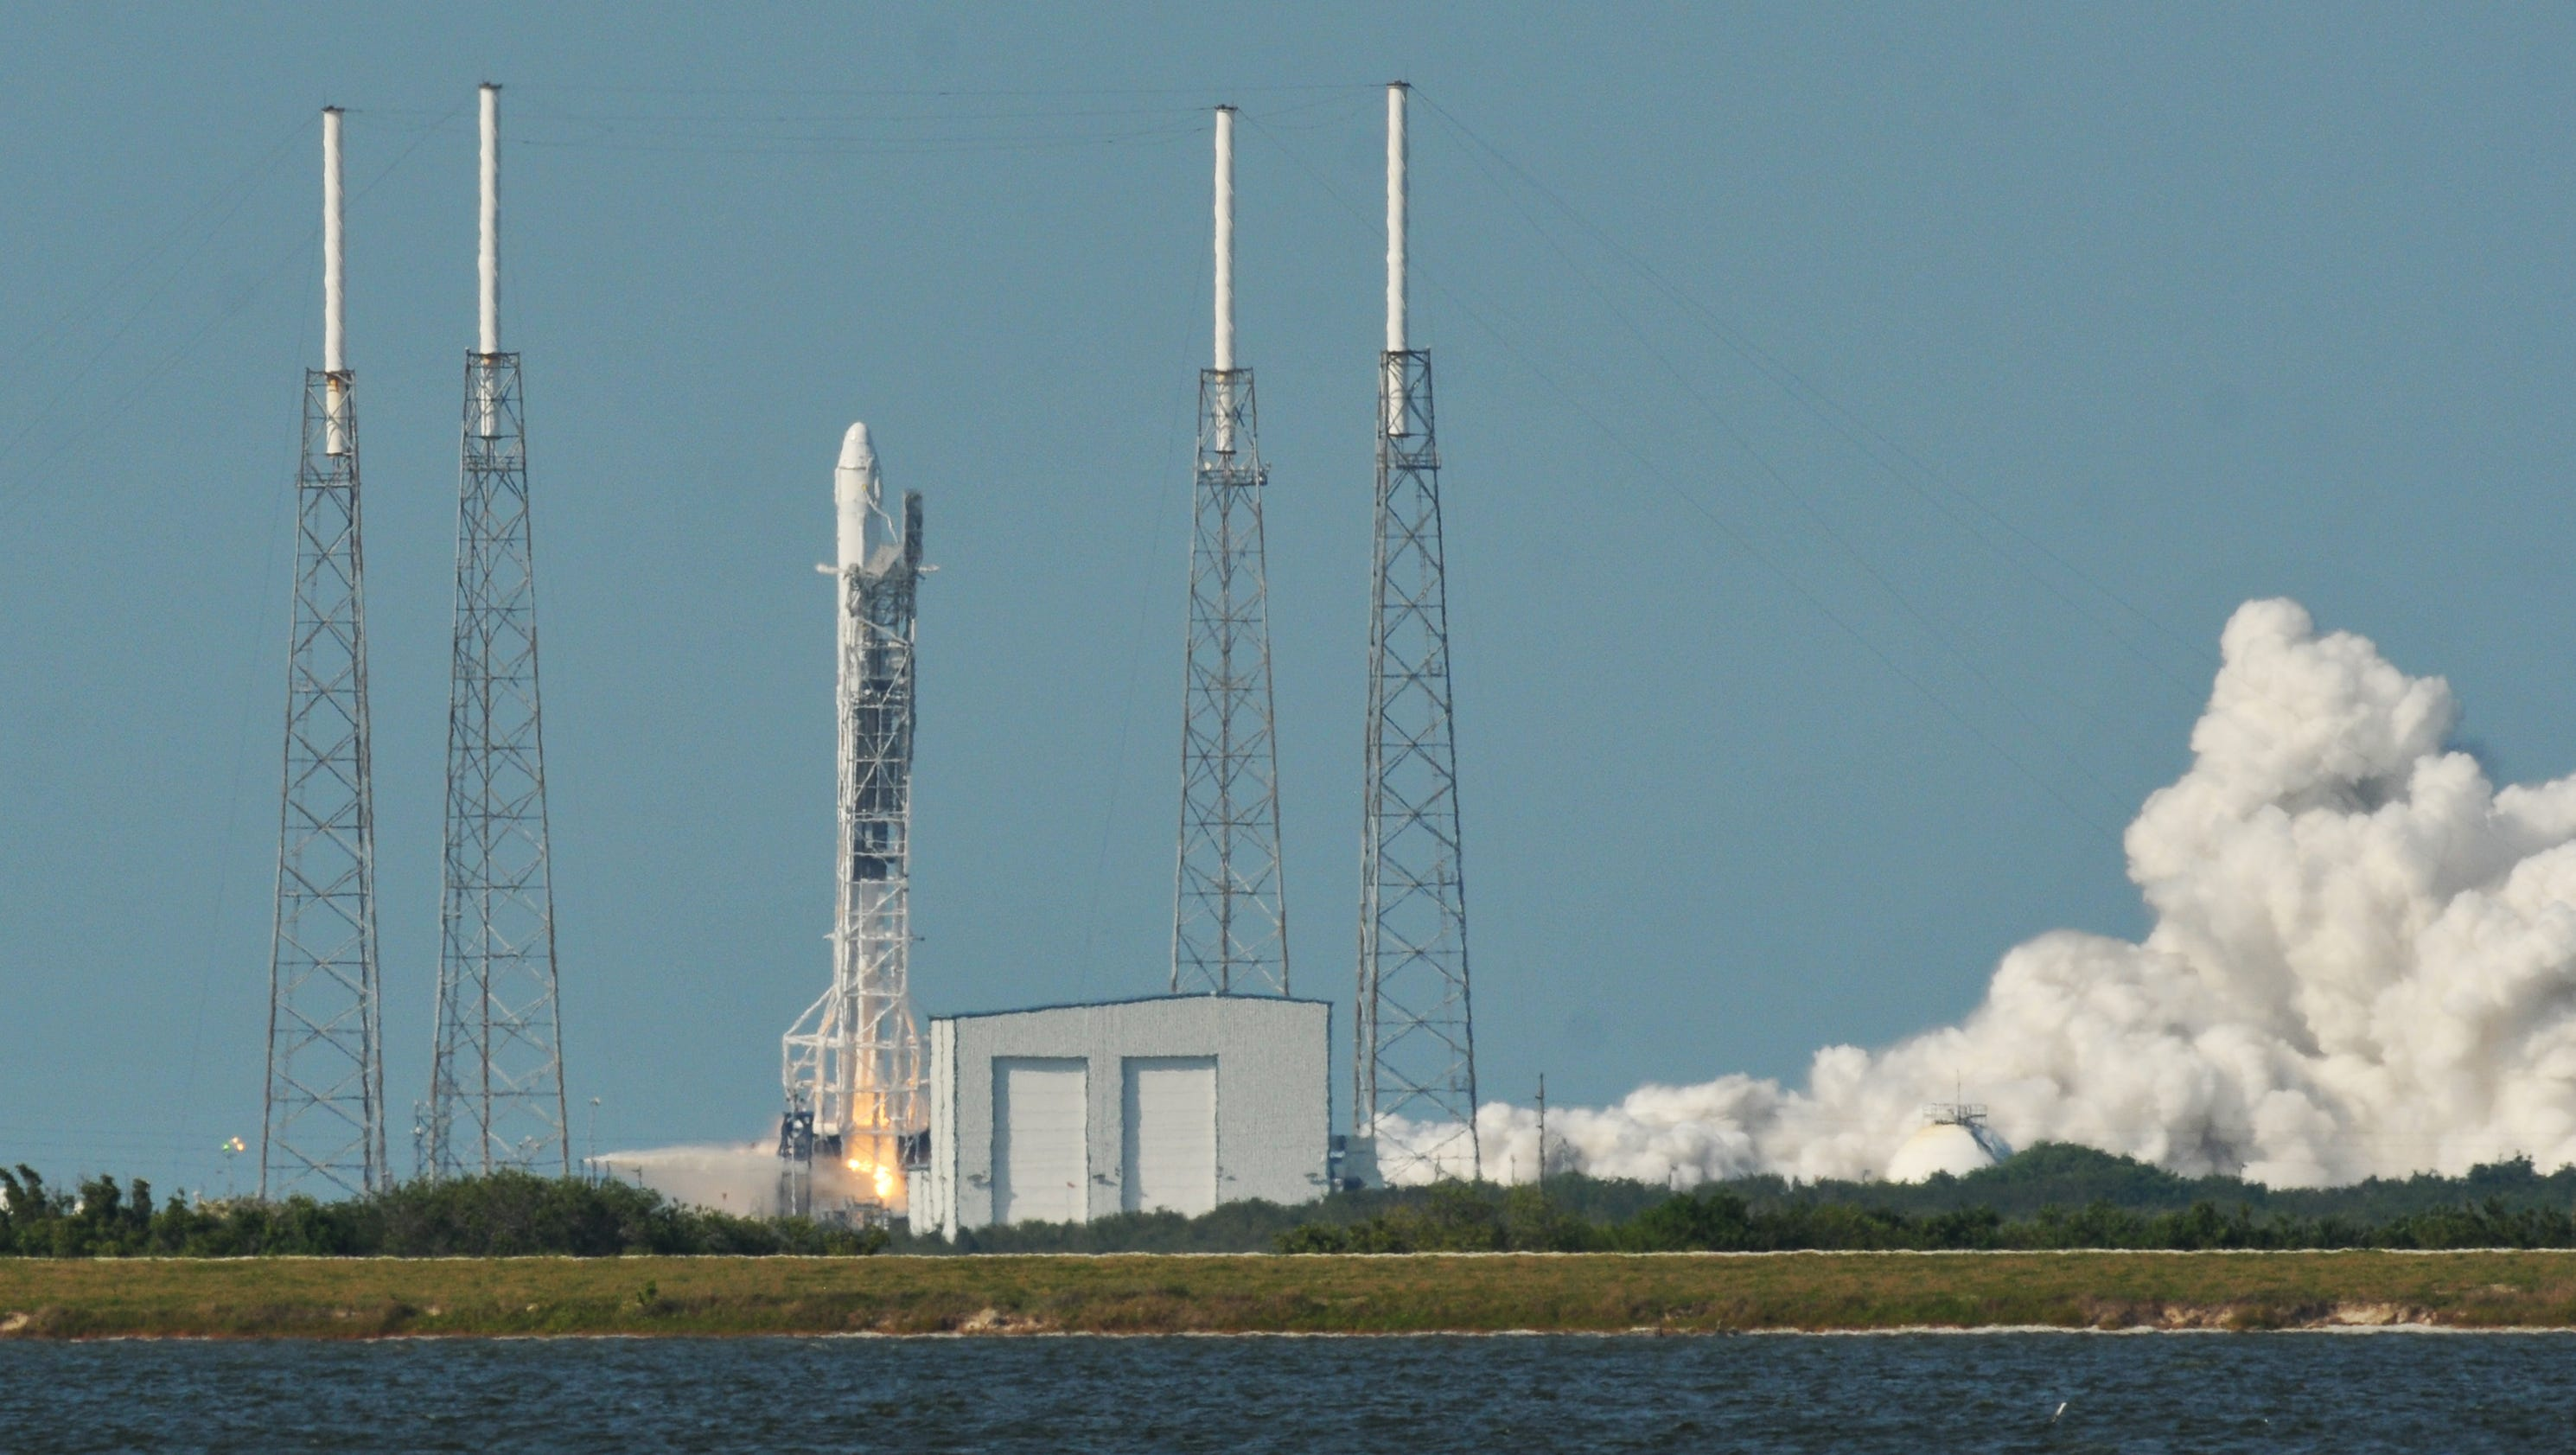 spacex florida - photo #13